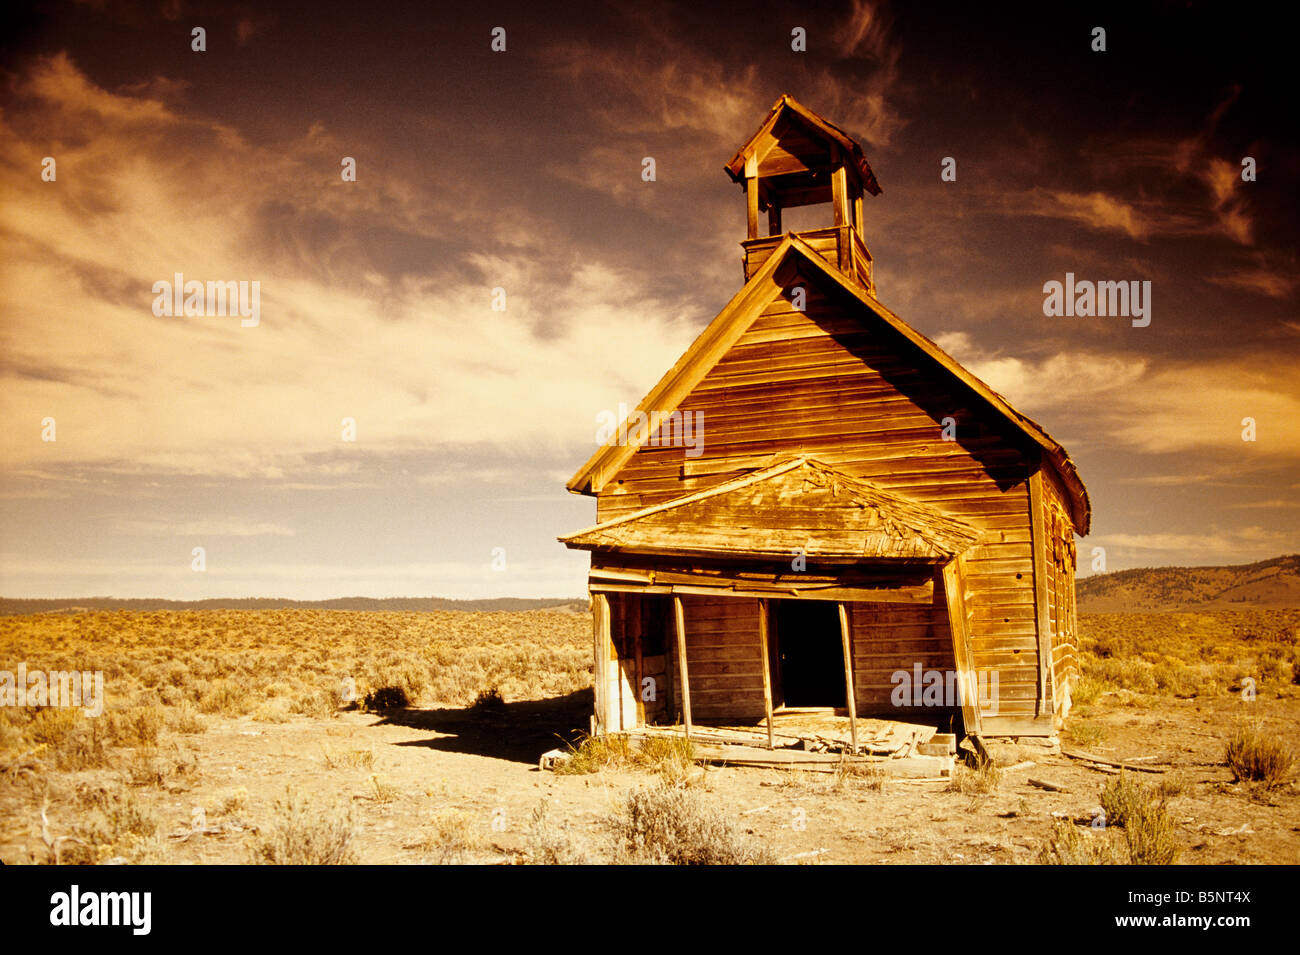 Old Schoolhouse on the prairie. - Stock Image